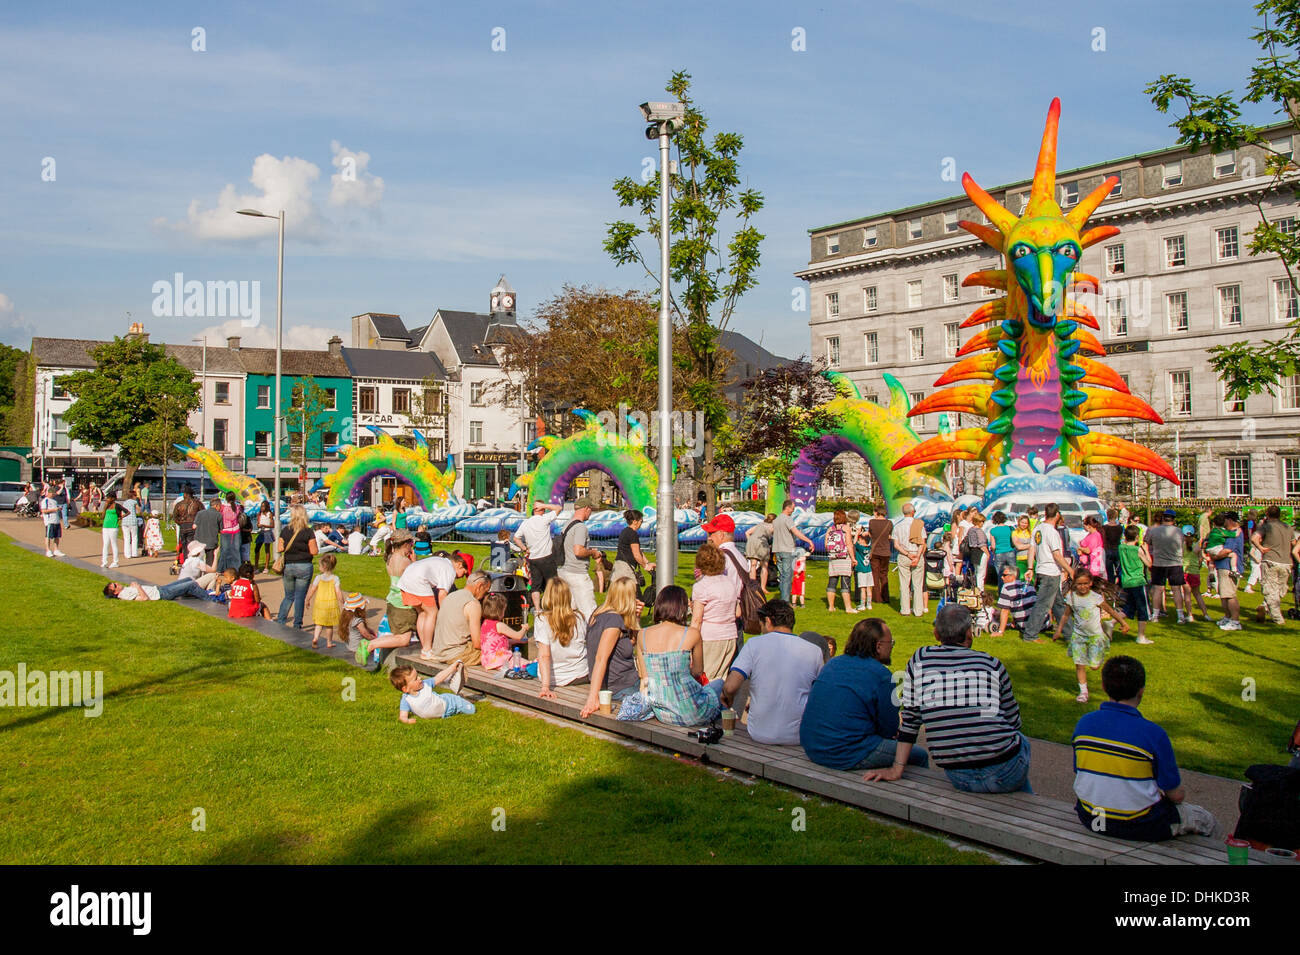 Eyre Square Galway City Ireland - Stock Image